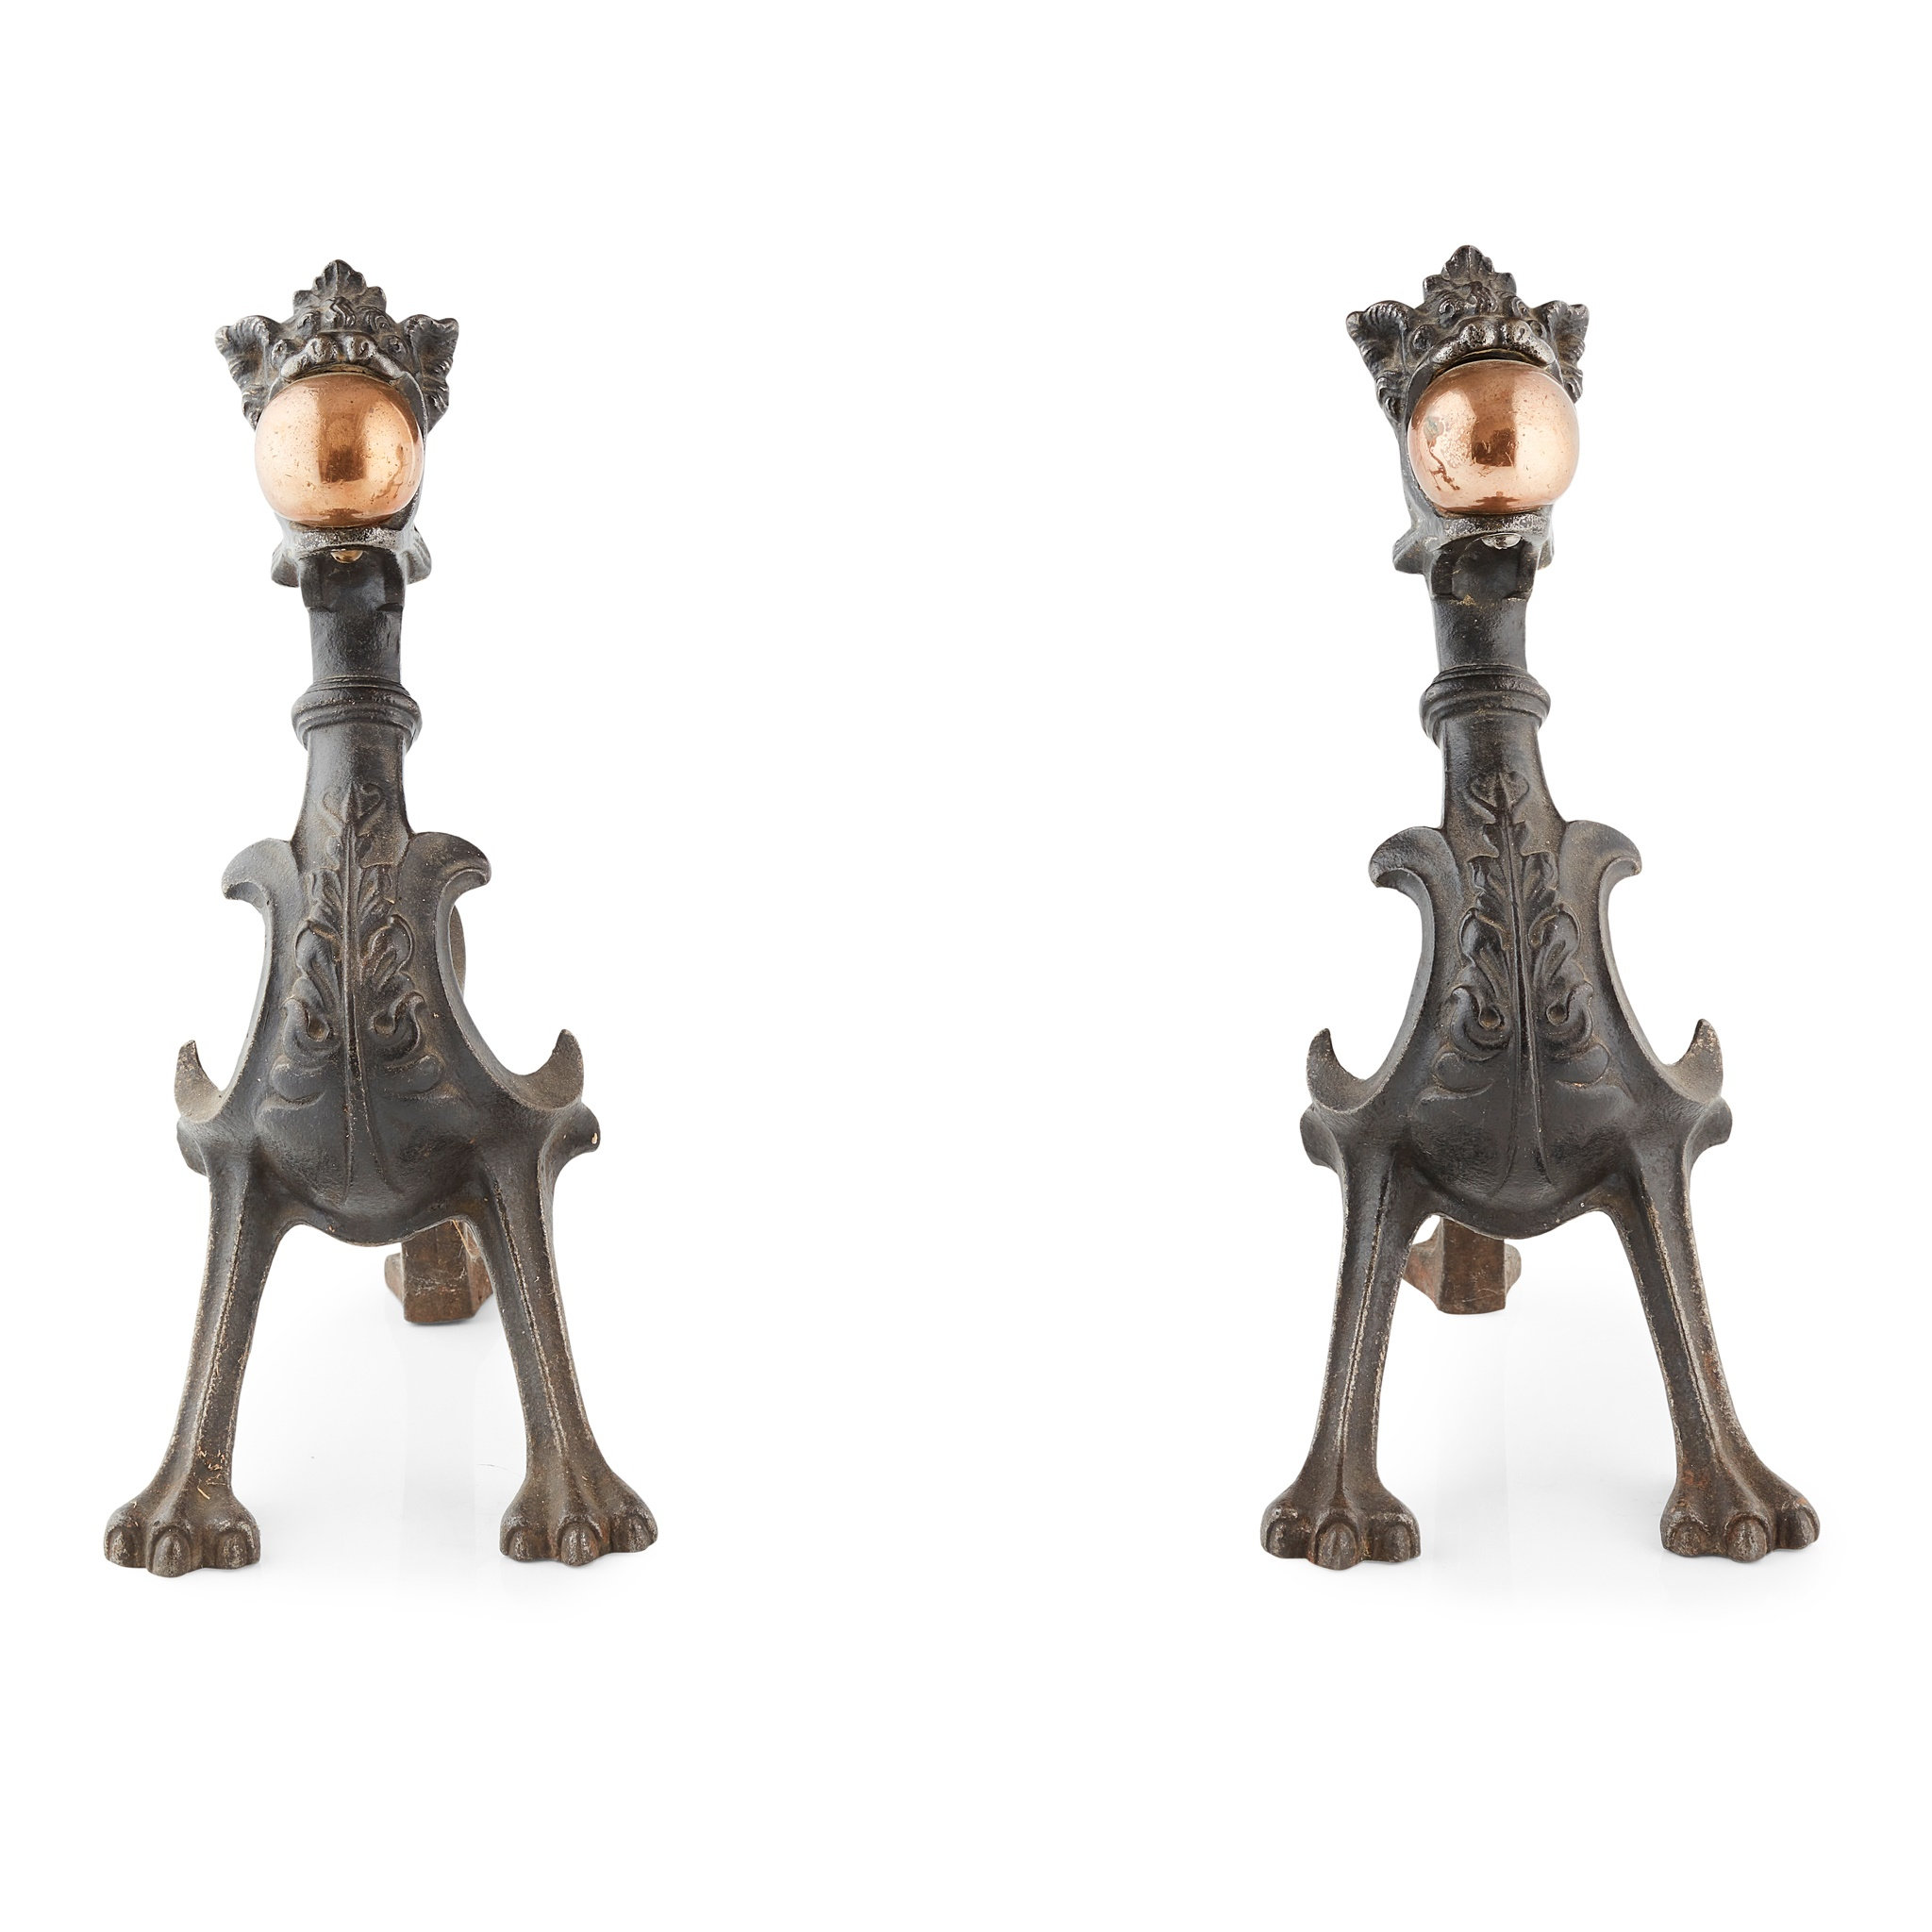 PAIR OF CAST IRON AND COPPER FIREDOGS 19TH CENTURY - Image 2 of 2